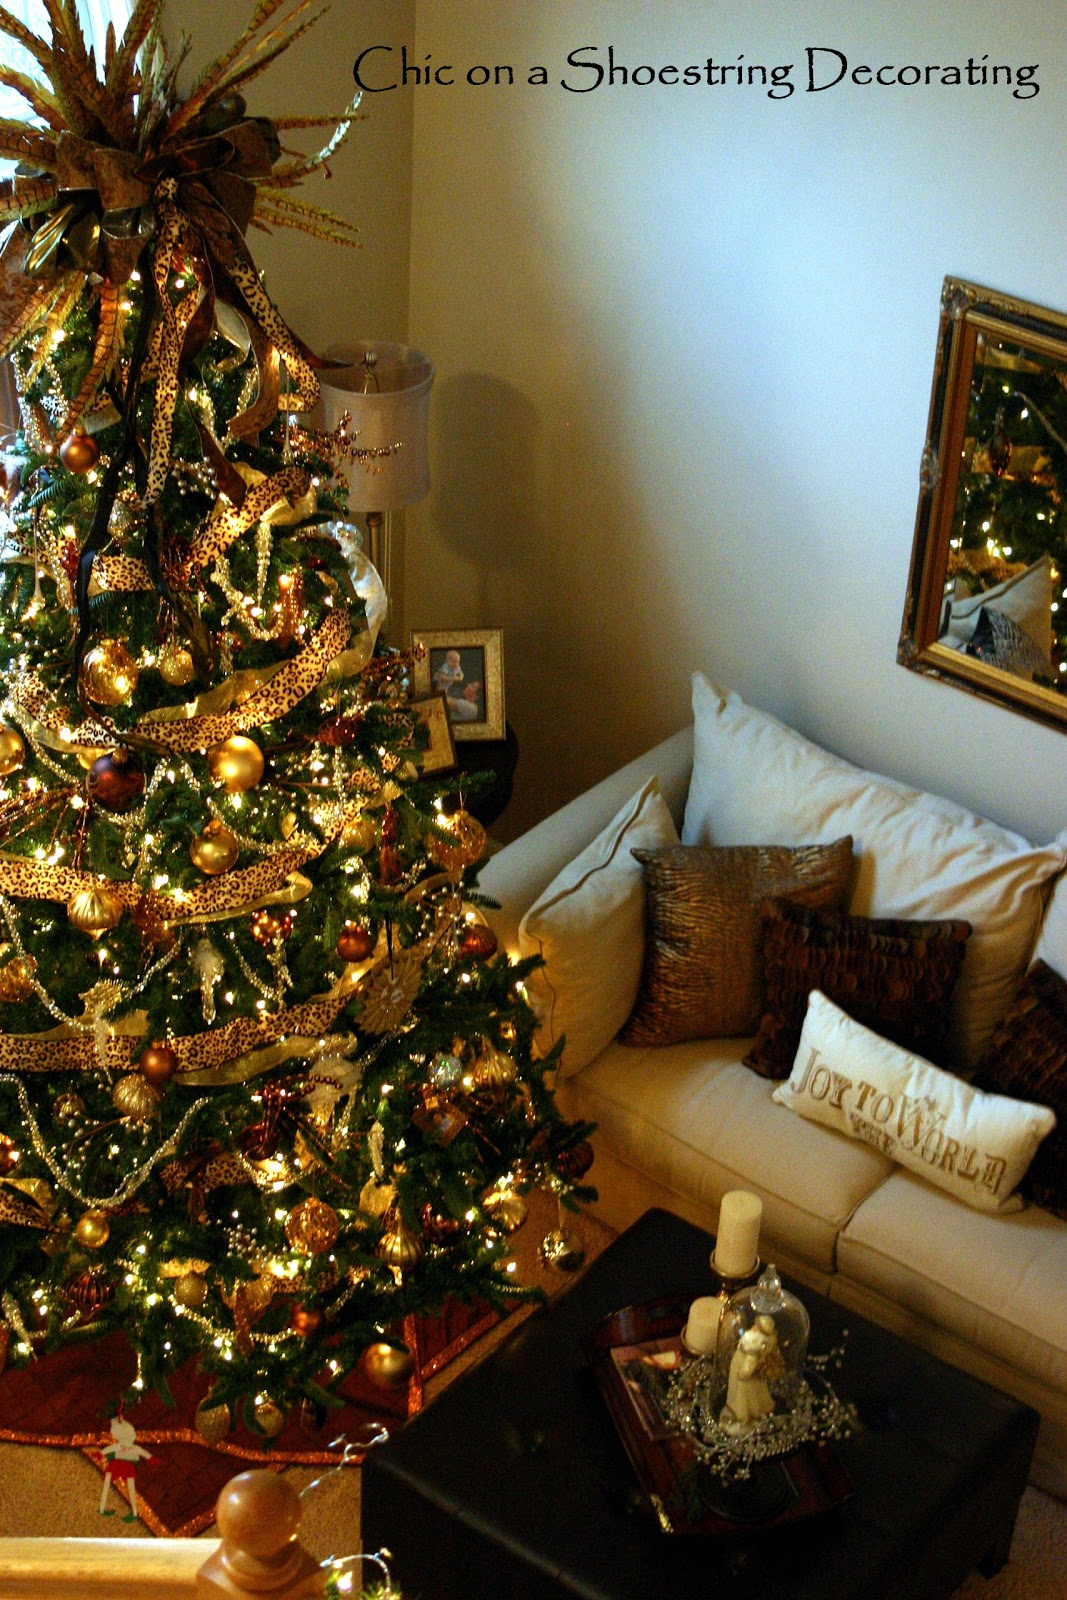 Christmas Tree Decorations Habitat : Chic on a shoestring decorating my fancy christmas tree